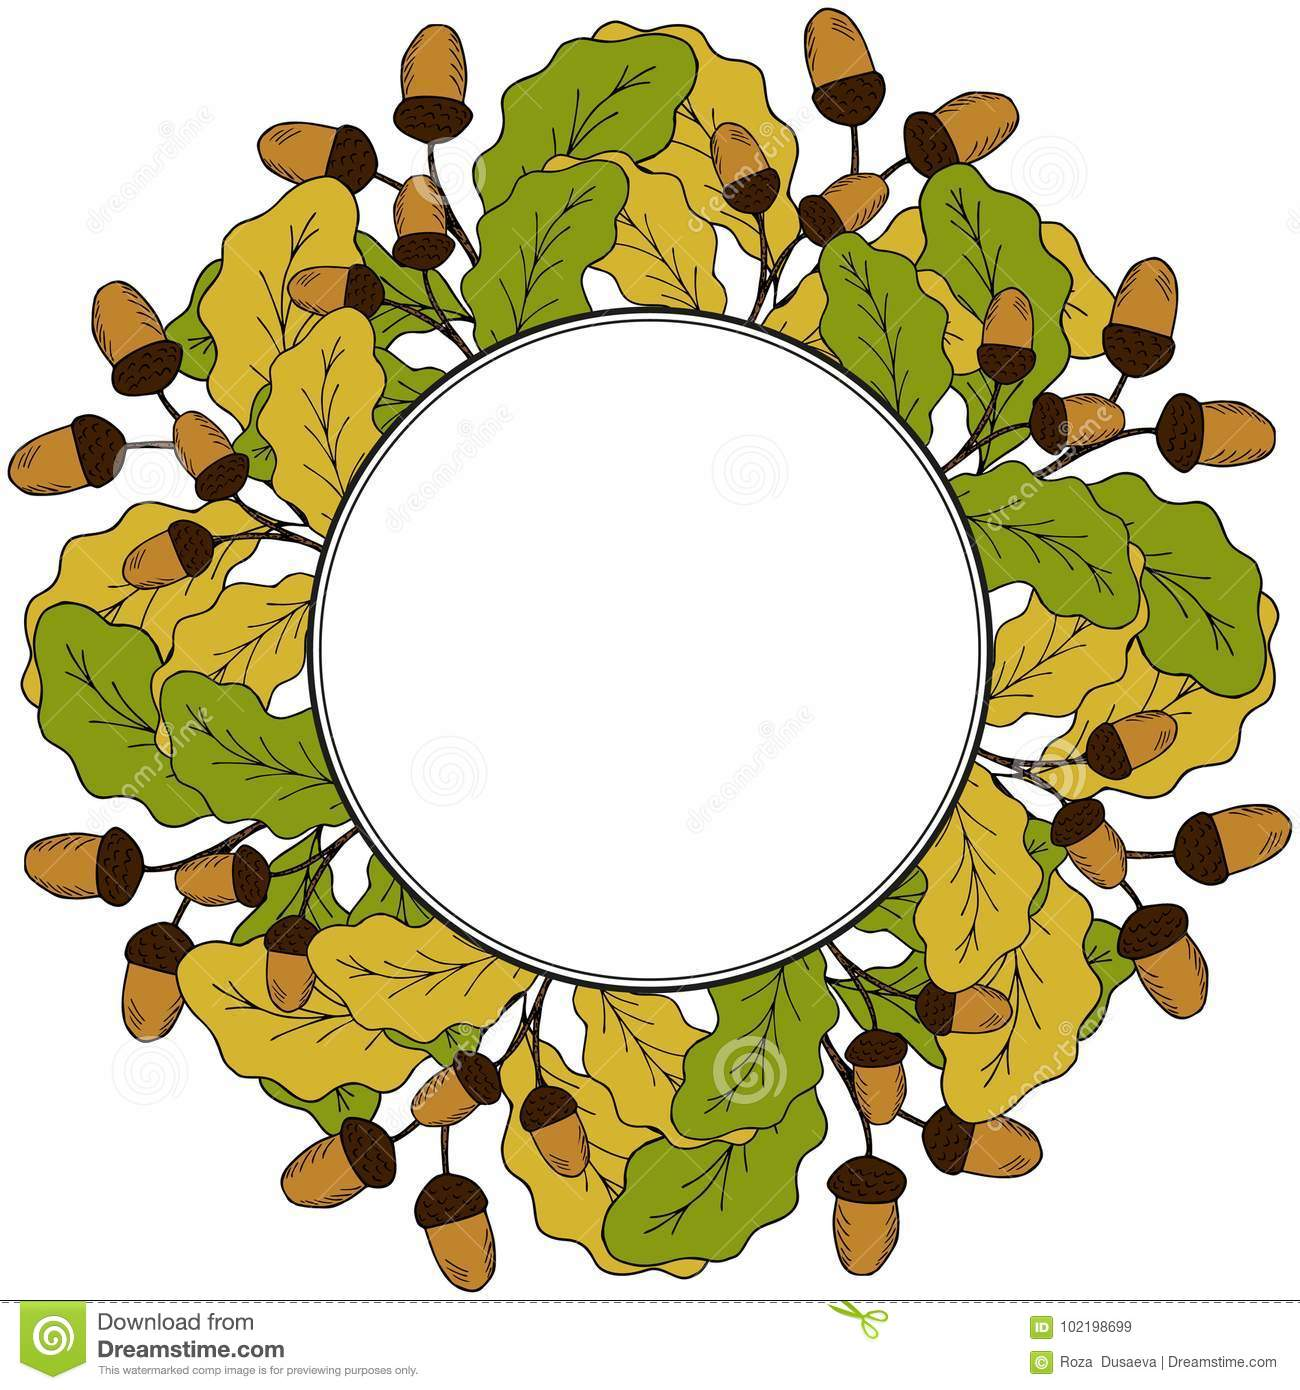 Acorn Leaf Colouring Pages Id | Clipart Panda - Free Clipart Images